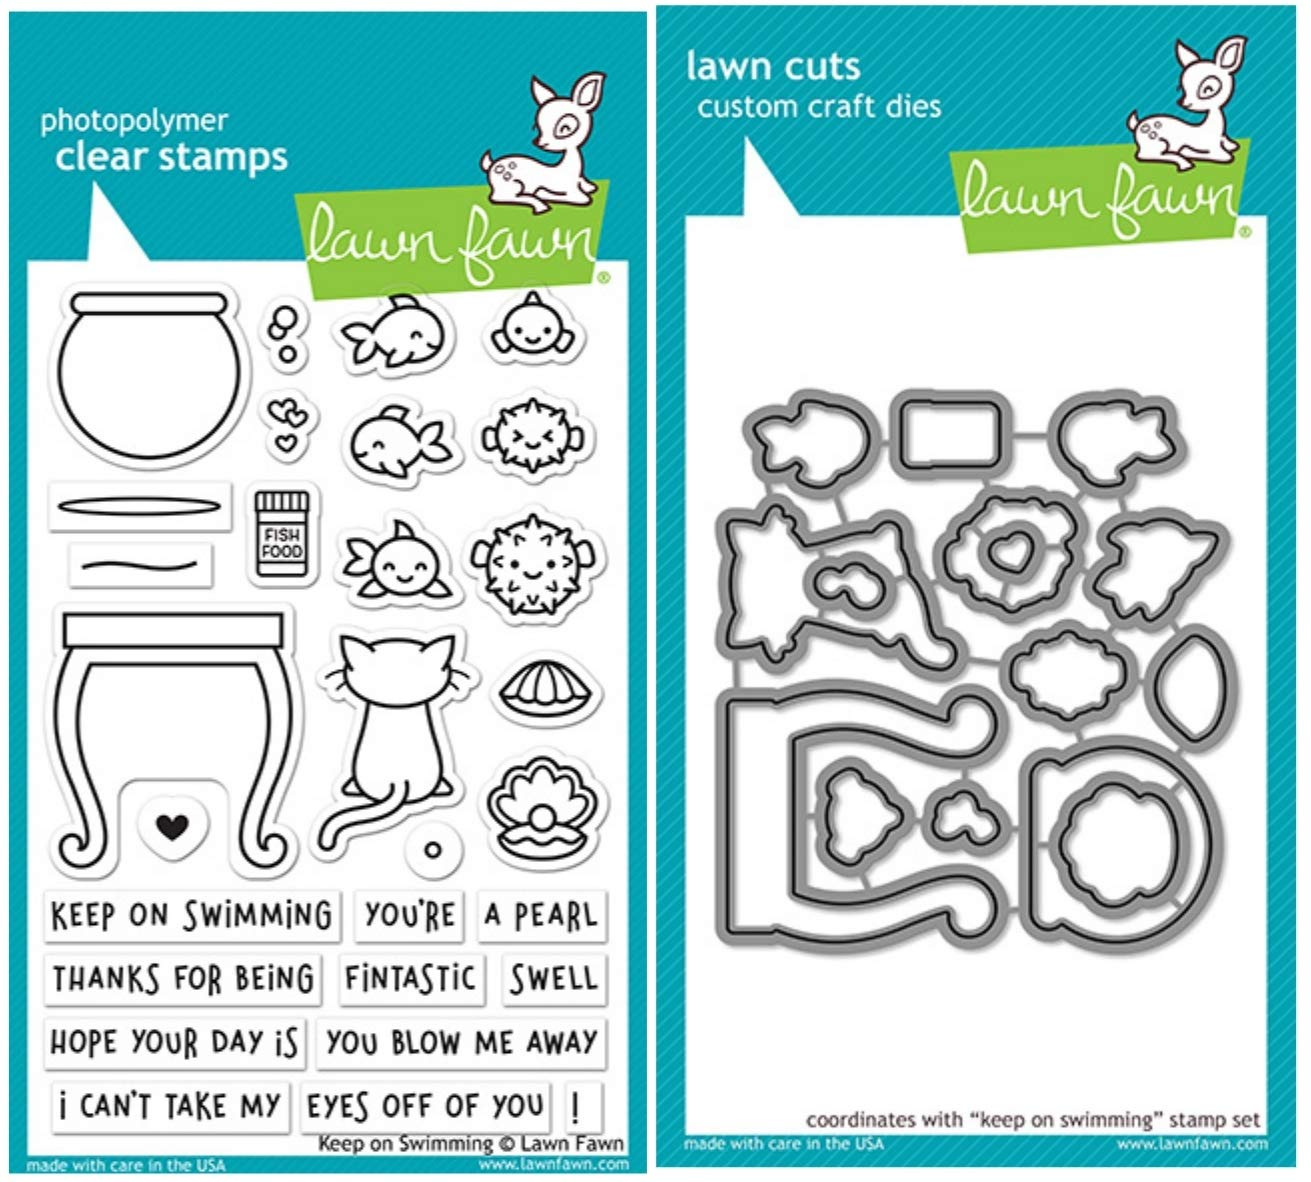 Lawn Fawn Keep on Swimming 4''x6'' Clear Stamps and Coordinating Custom Craft Dies, Bundle of Two Items (LF 1955, LF1956)